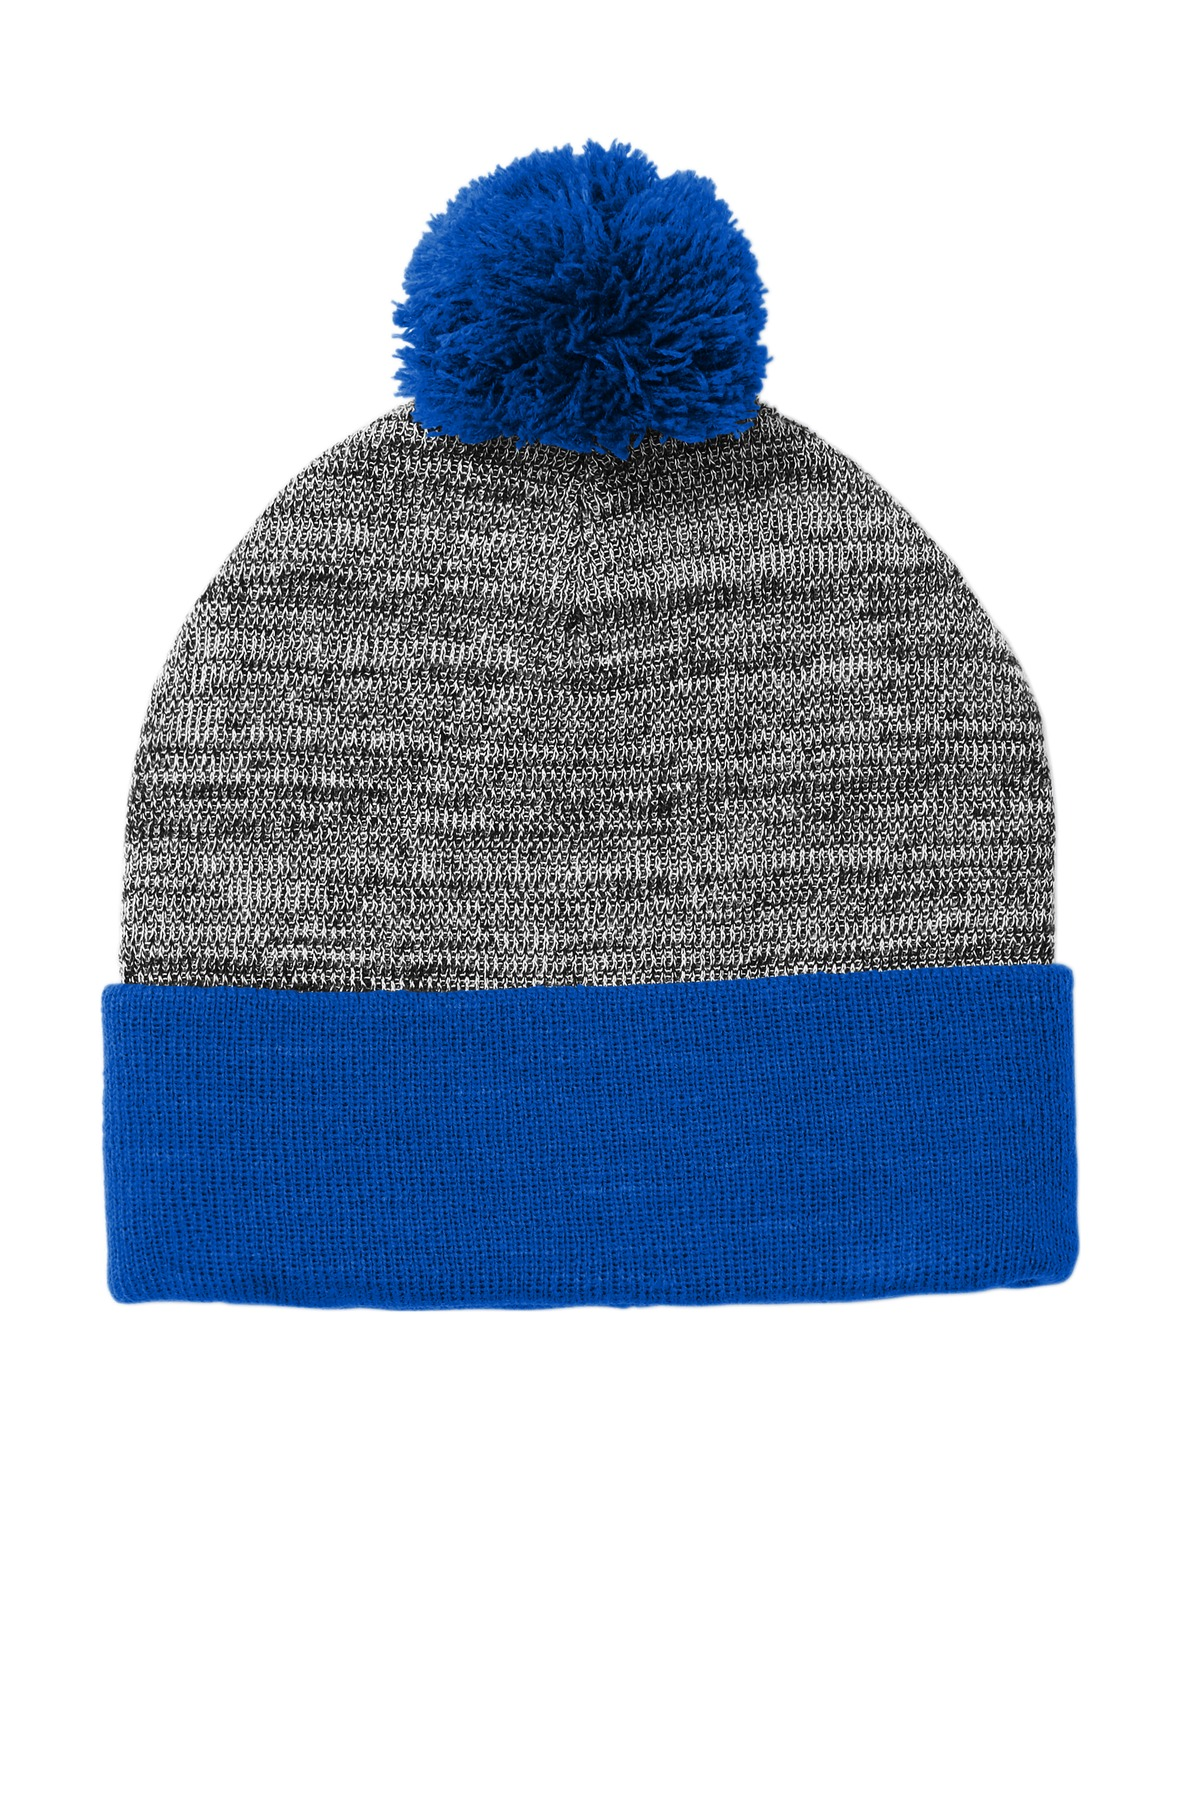 Sport-Tek  ®  Heather Pom Pom Beanie STC41 - True Royal/ Grey Heather